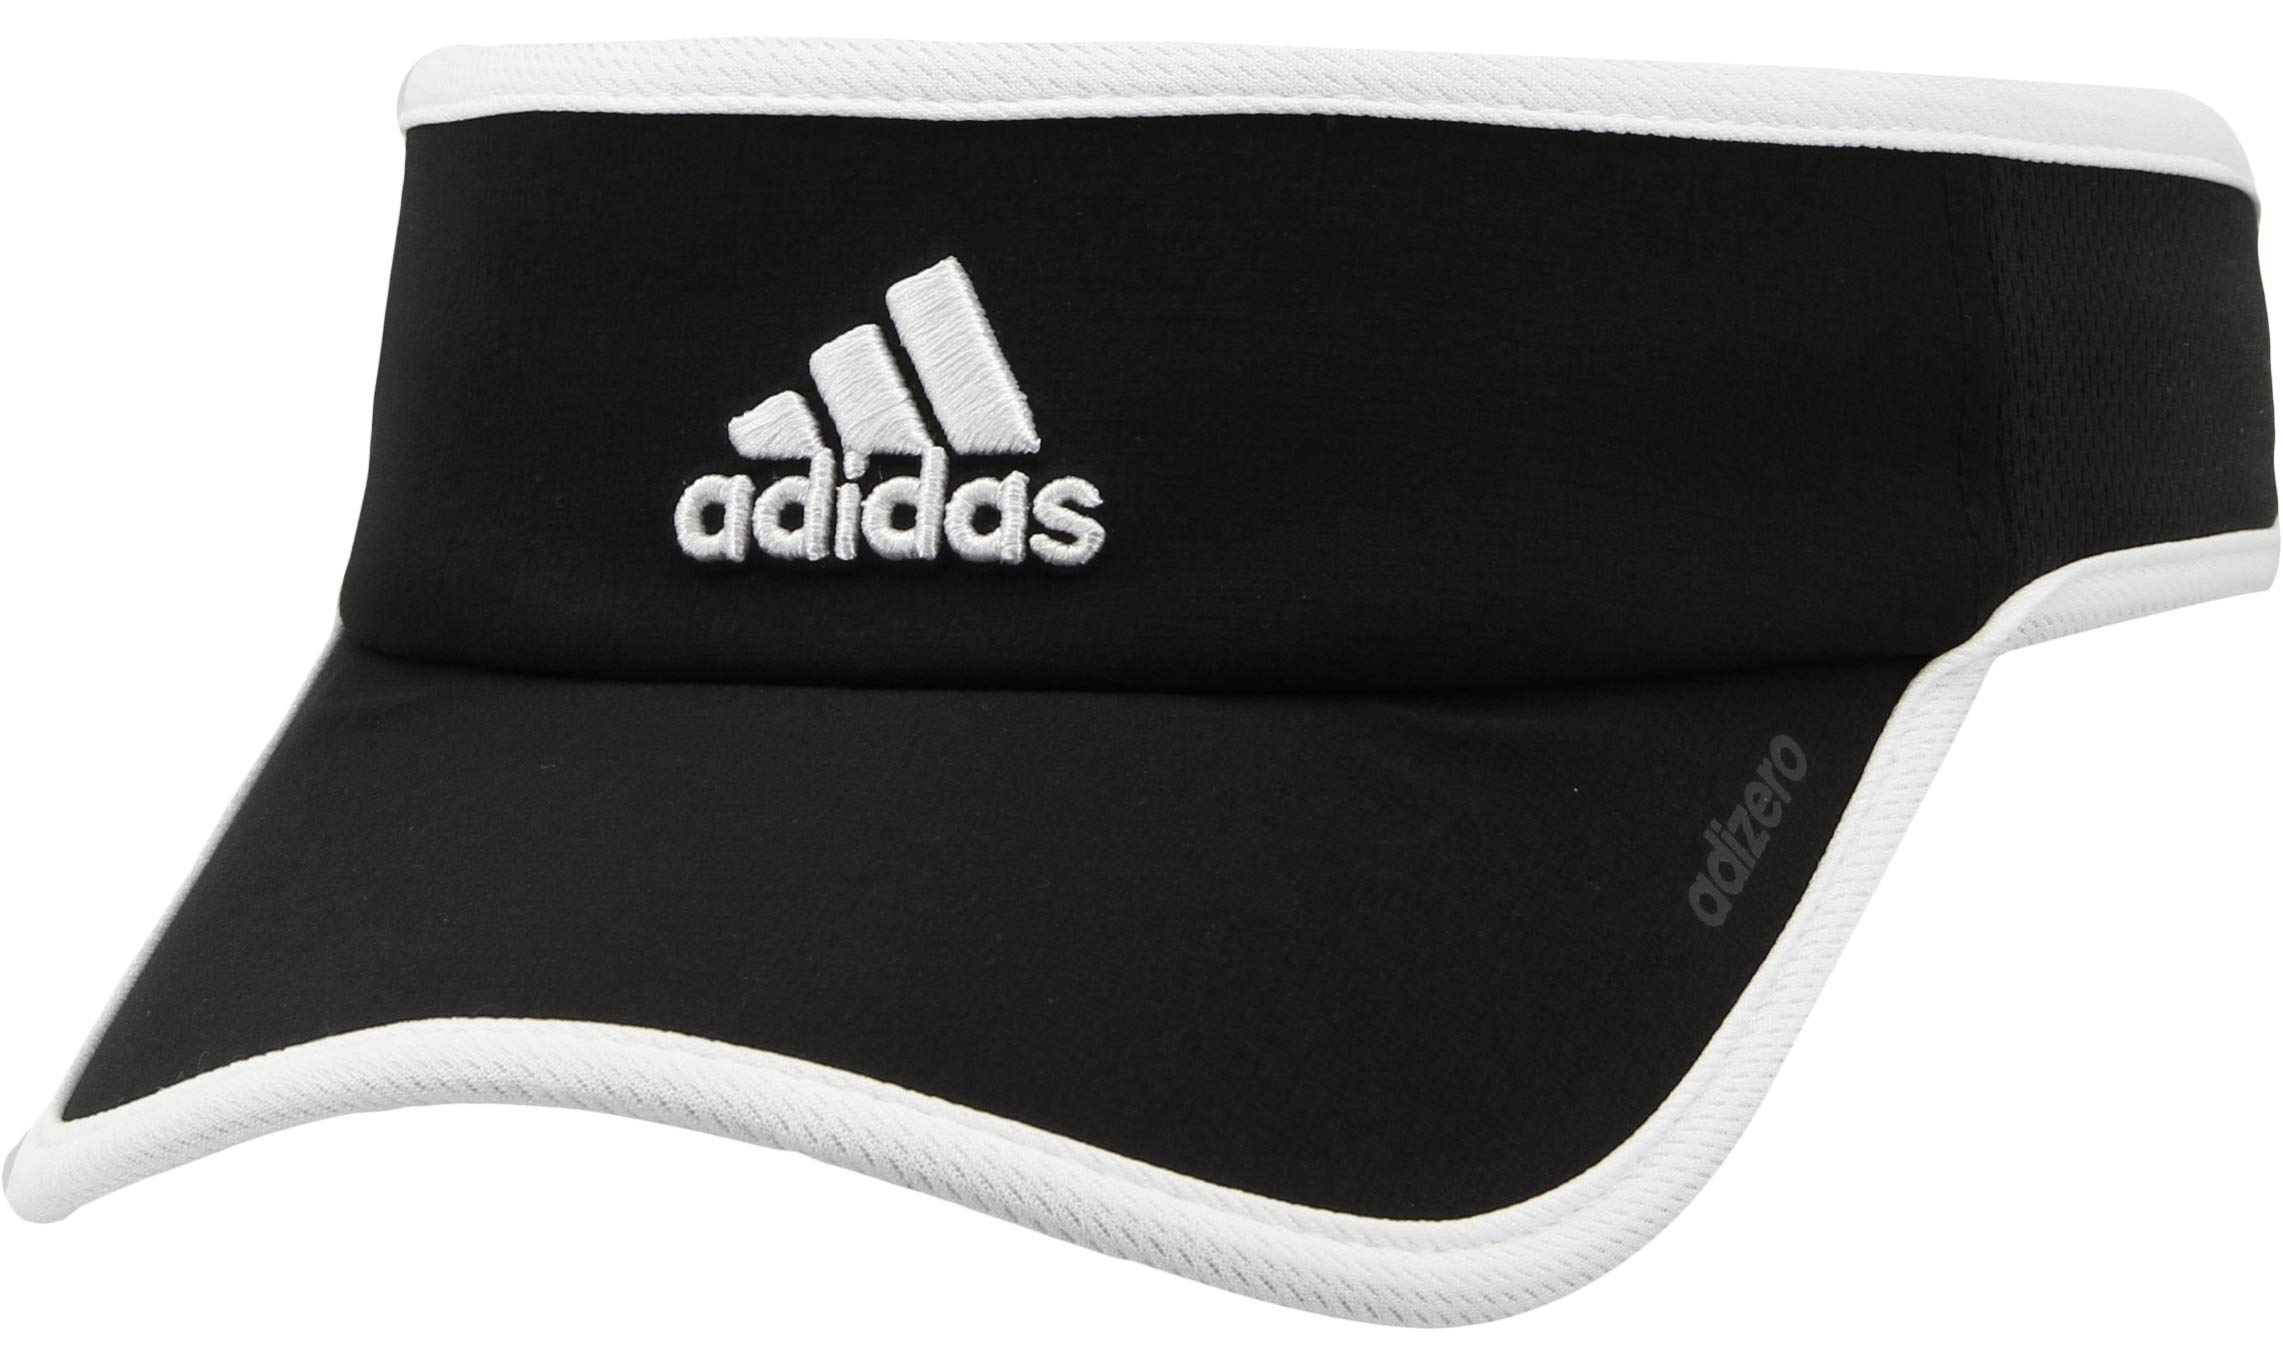 adidas Women's Adizero II Visor, Black/White, ONE SIZE by adidas